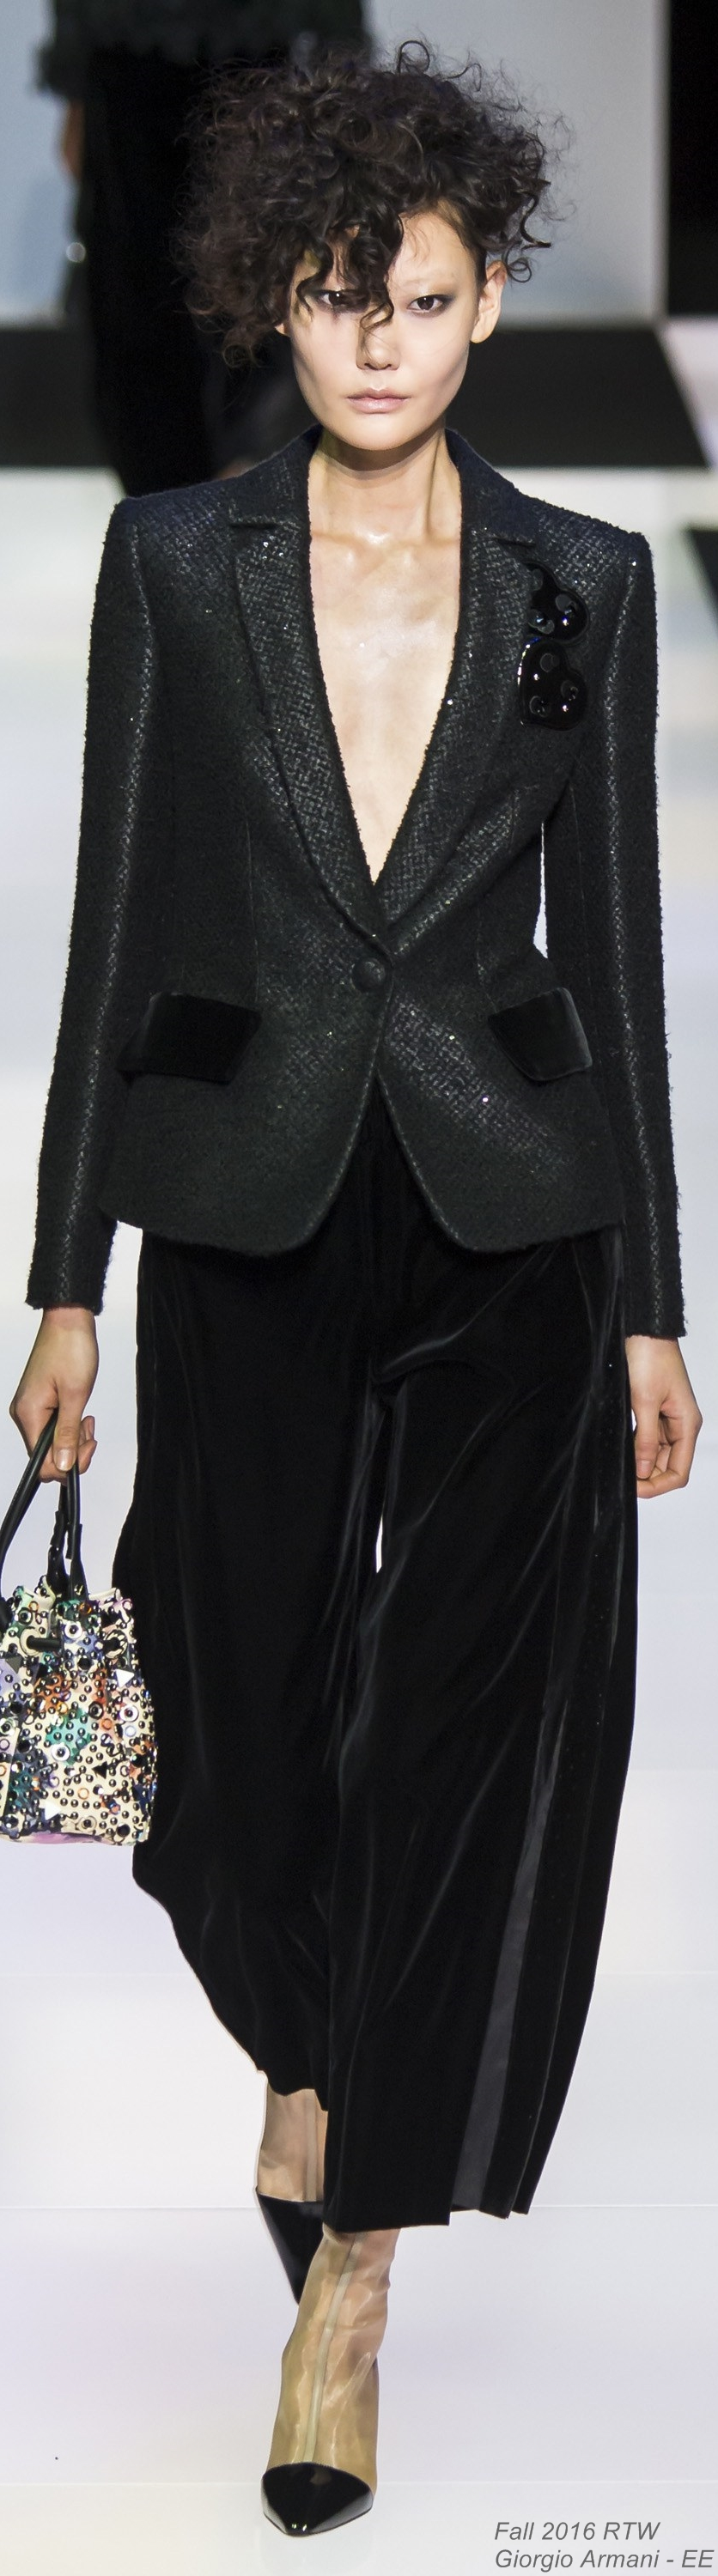 Fall 2016 Ready-to-Wear Giorgio Armani